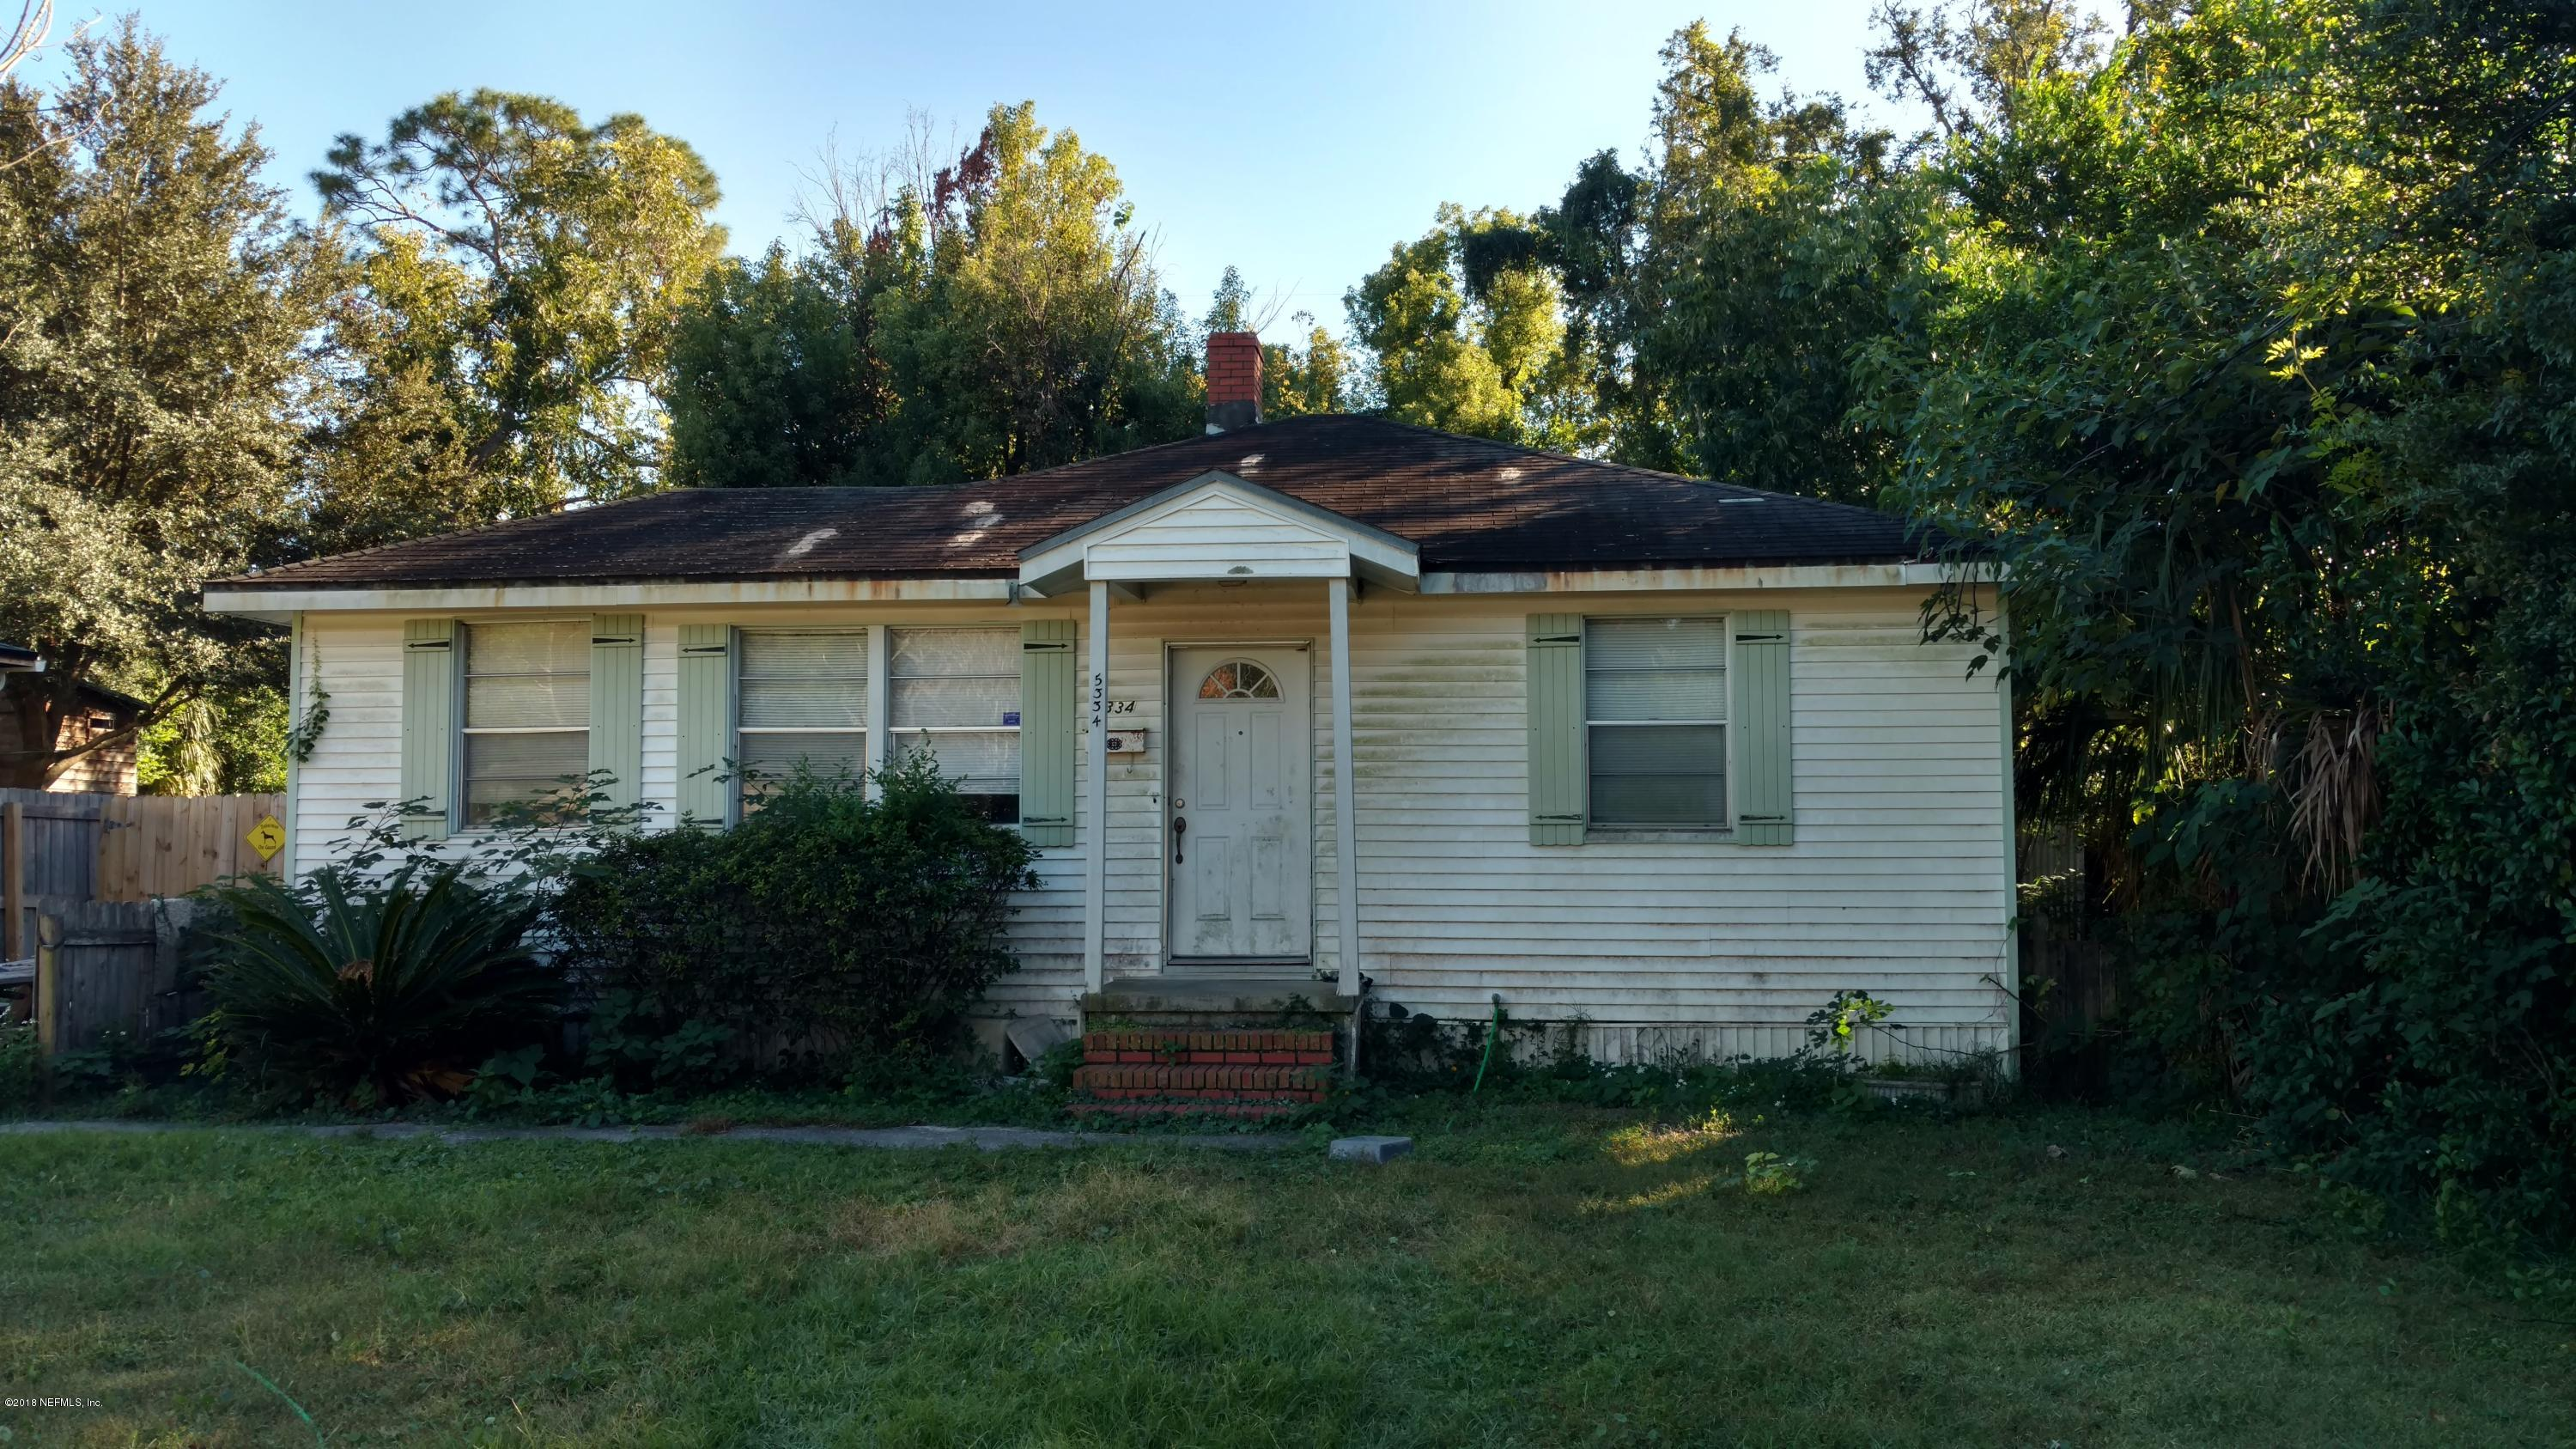 5334 LEXINGTON, JACKSONVILLE, FLORIDA 32210, 2 Bedrooms Bedrooms, ,1 BathroomBathrooms,Residential - single family,For sale,LEXINGTON,965177